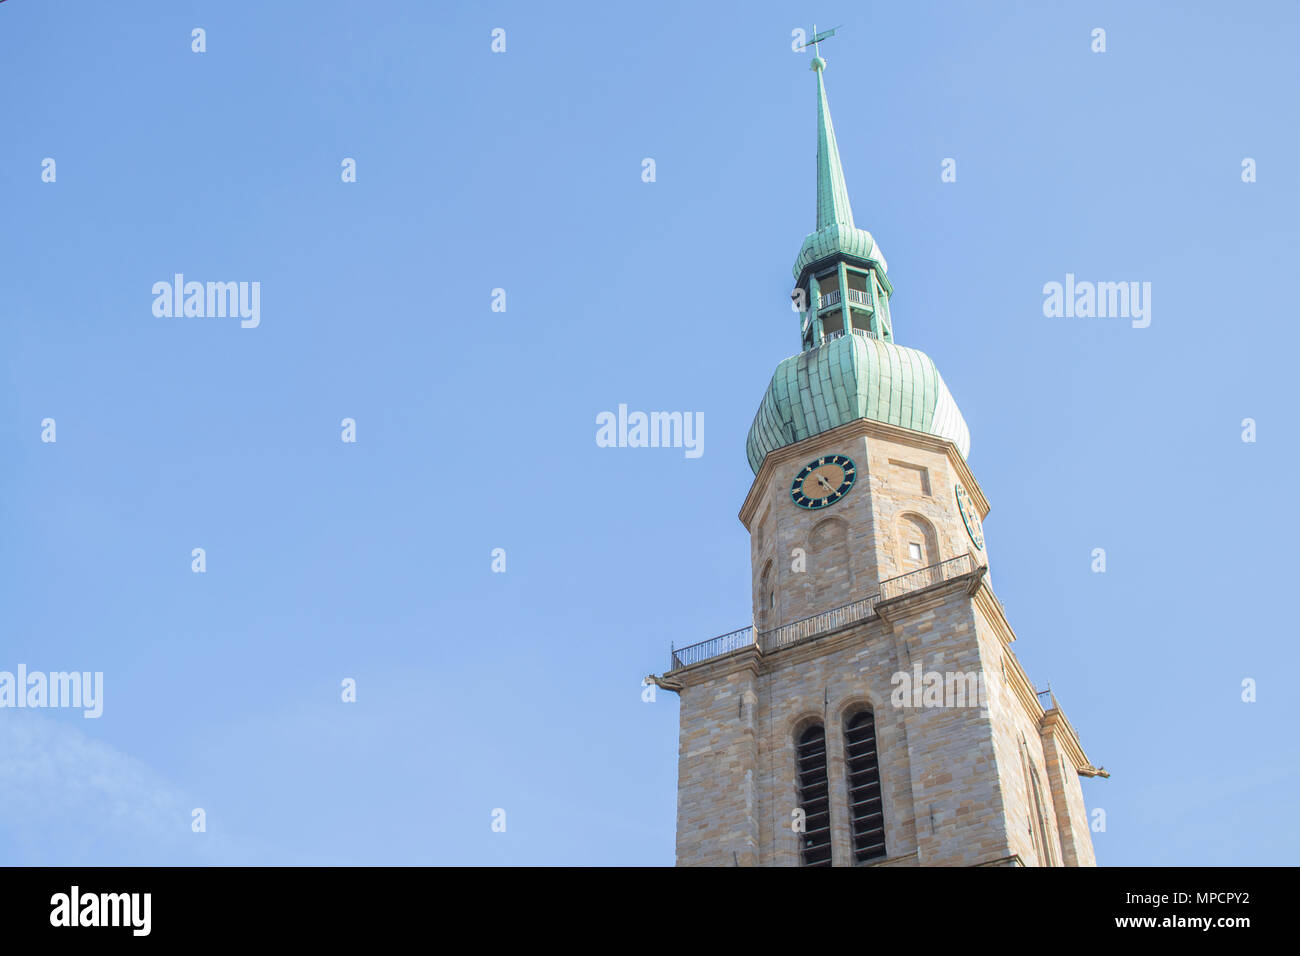 Dortmund, Ruhr Area, North Rhine Westphalia, Germany - April 16 2018: St. Reinoldi Church in historic city center - Stock Image